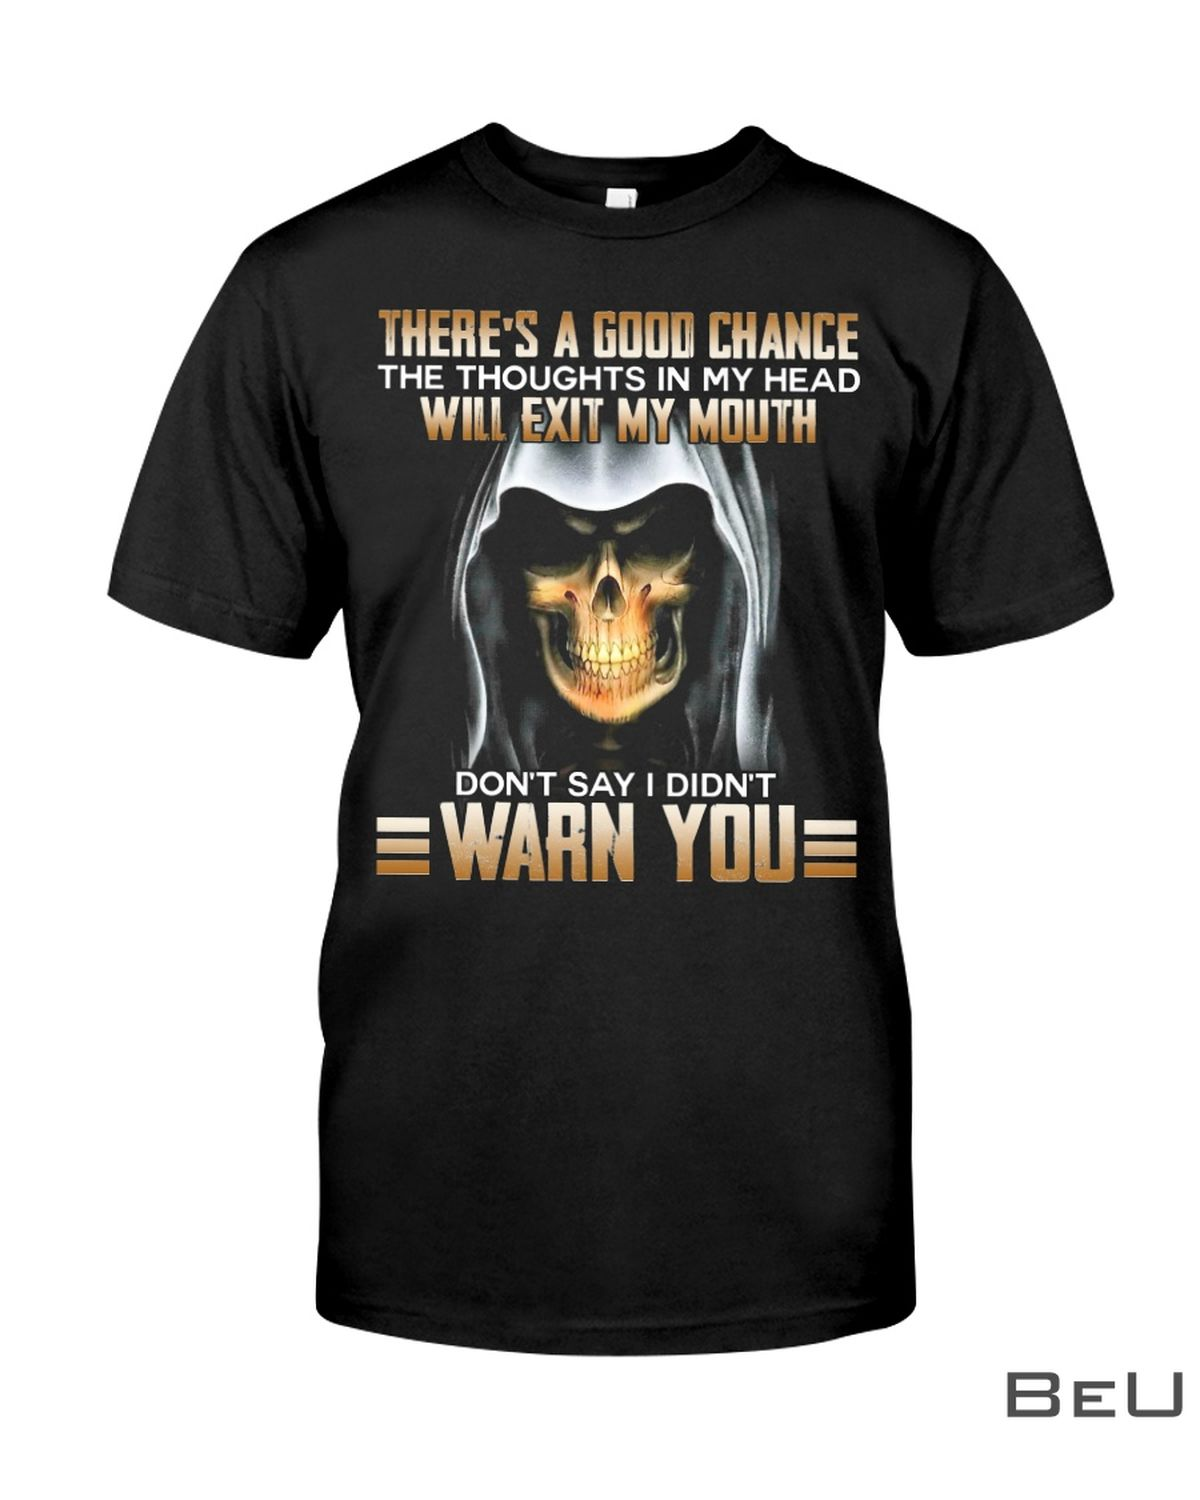 There's a good chance the thoughts in my head will exit my mouth don't say I didn't warn you shirt